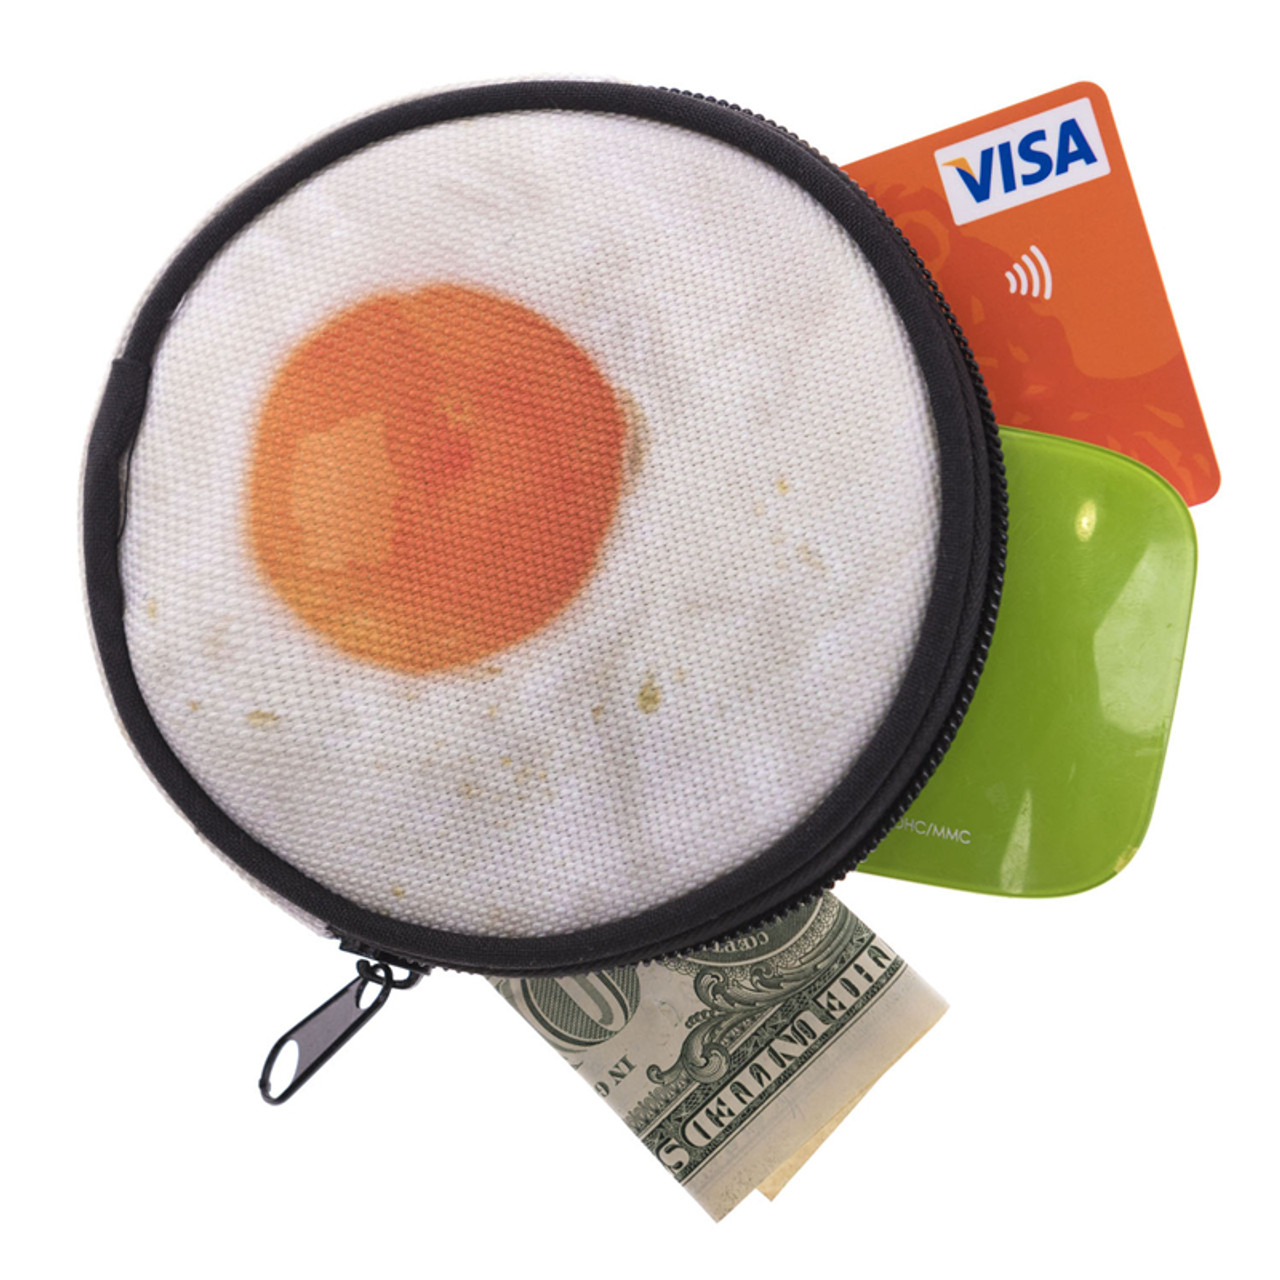 Fried Egg Round Graphic Print Coin Purse - 18 Styles shown with cash and cards sticking out